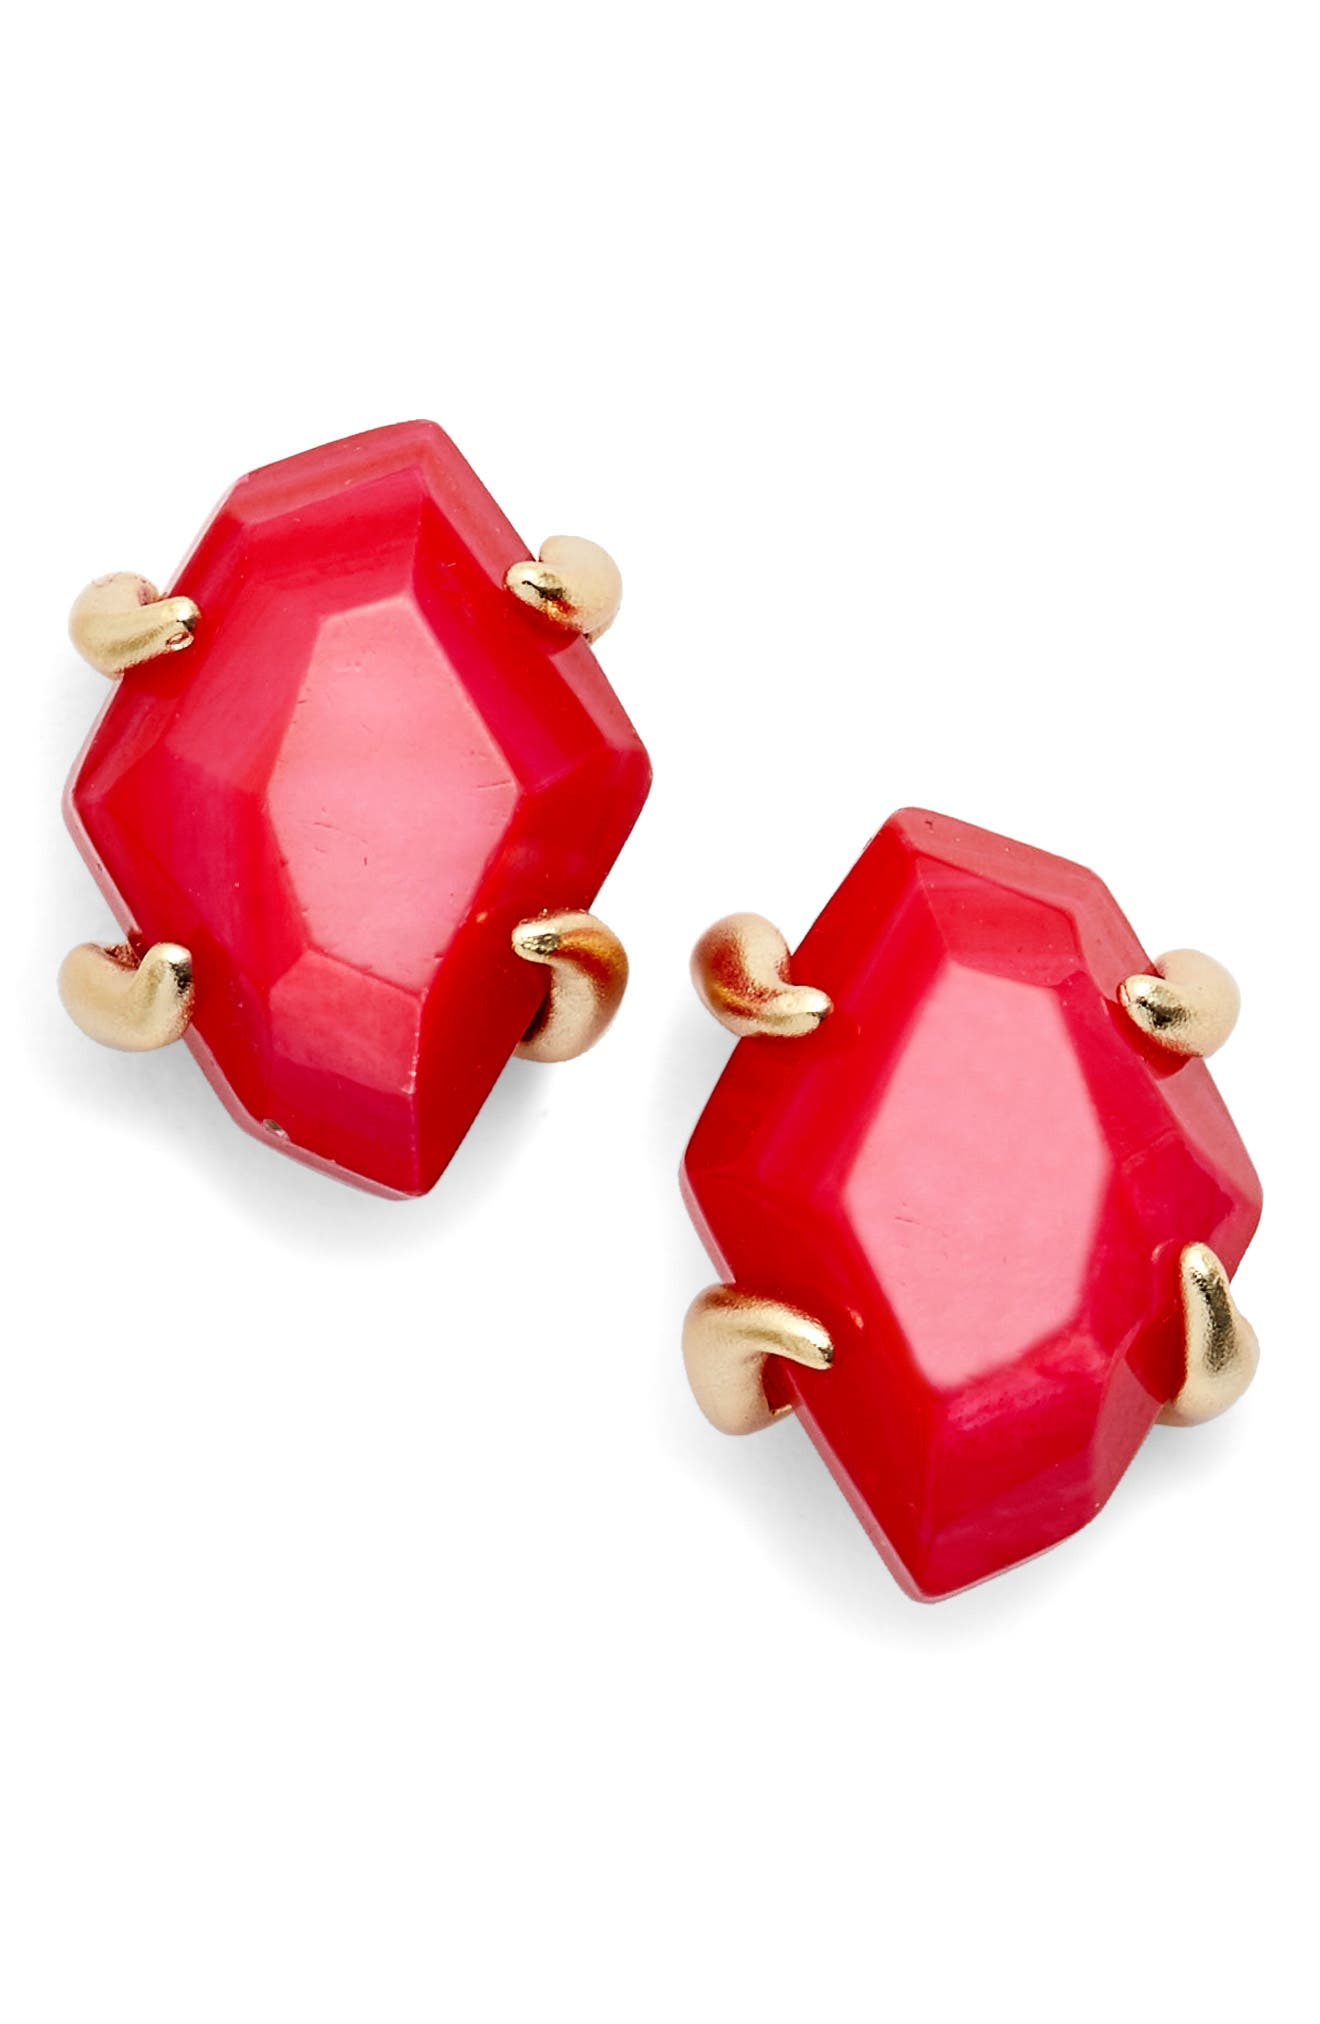 Inaiyah Stud Earrings,                         Main,                         color, Red Mop/ Gold